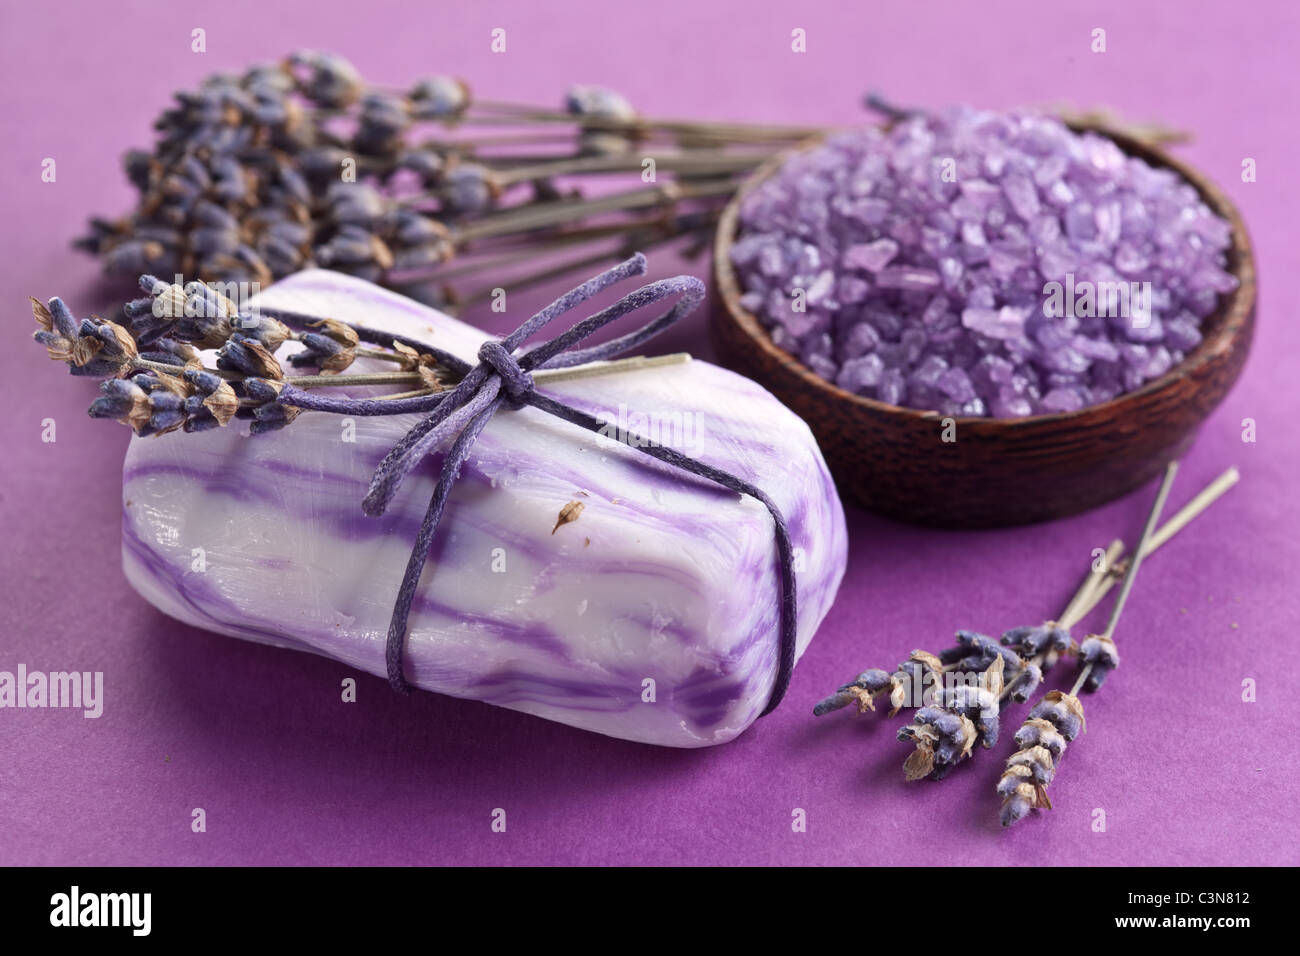 Soap with sea-salt and dried lavender. - Stock Image